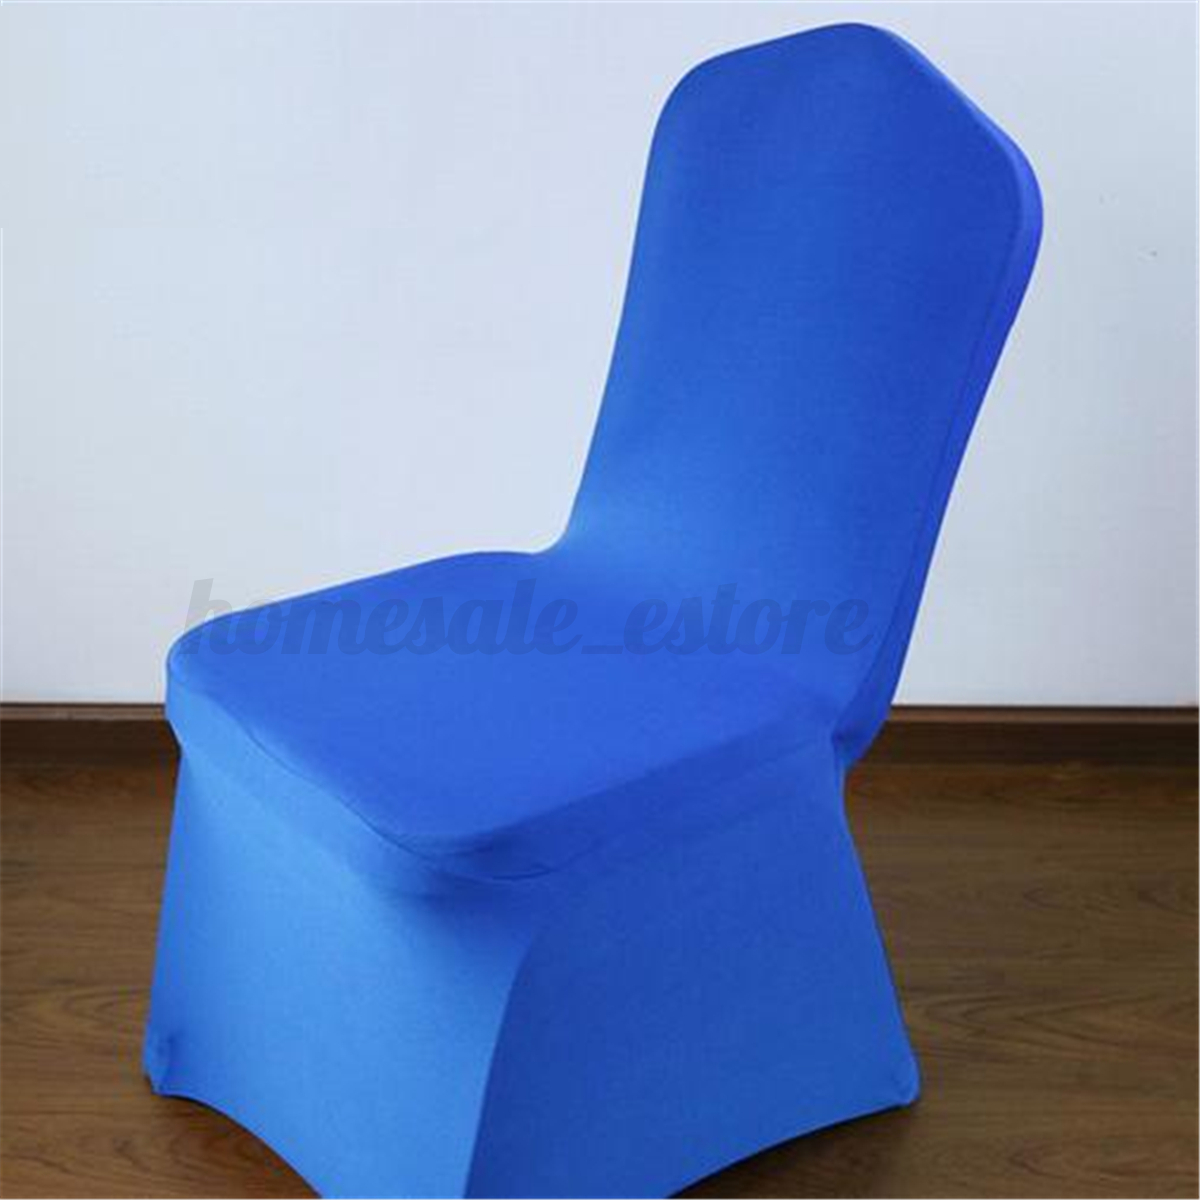 chair covers universal recaro seats office chairs 10 50 100pcs polyester spandex cover